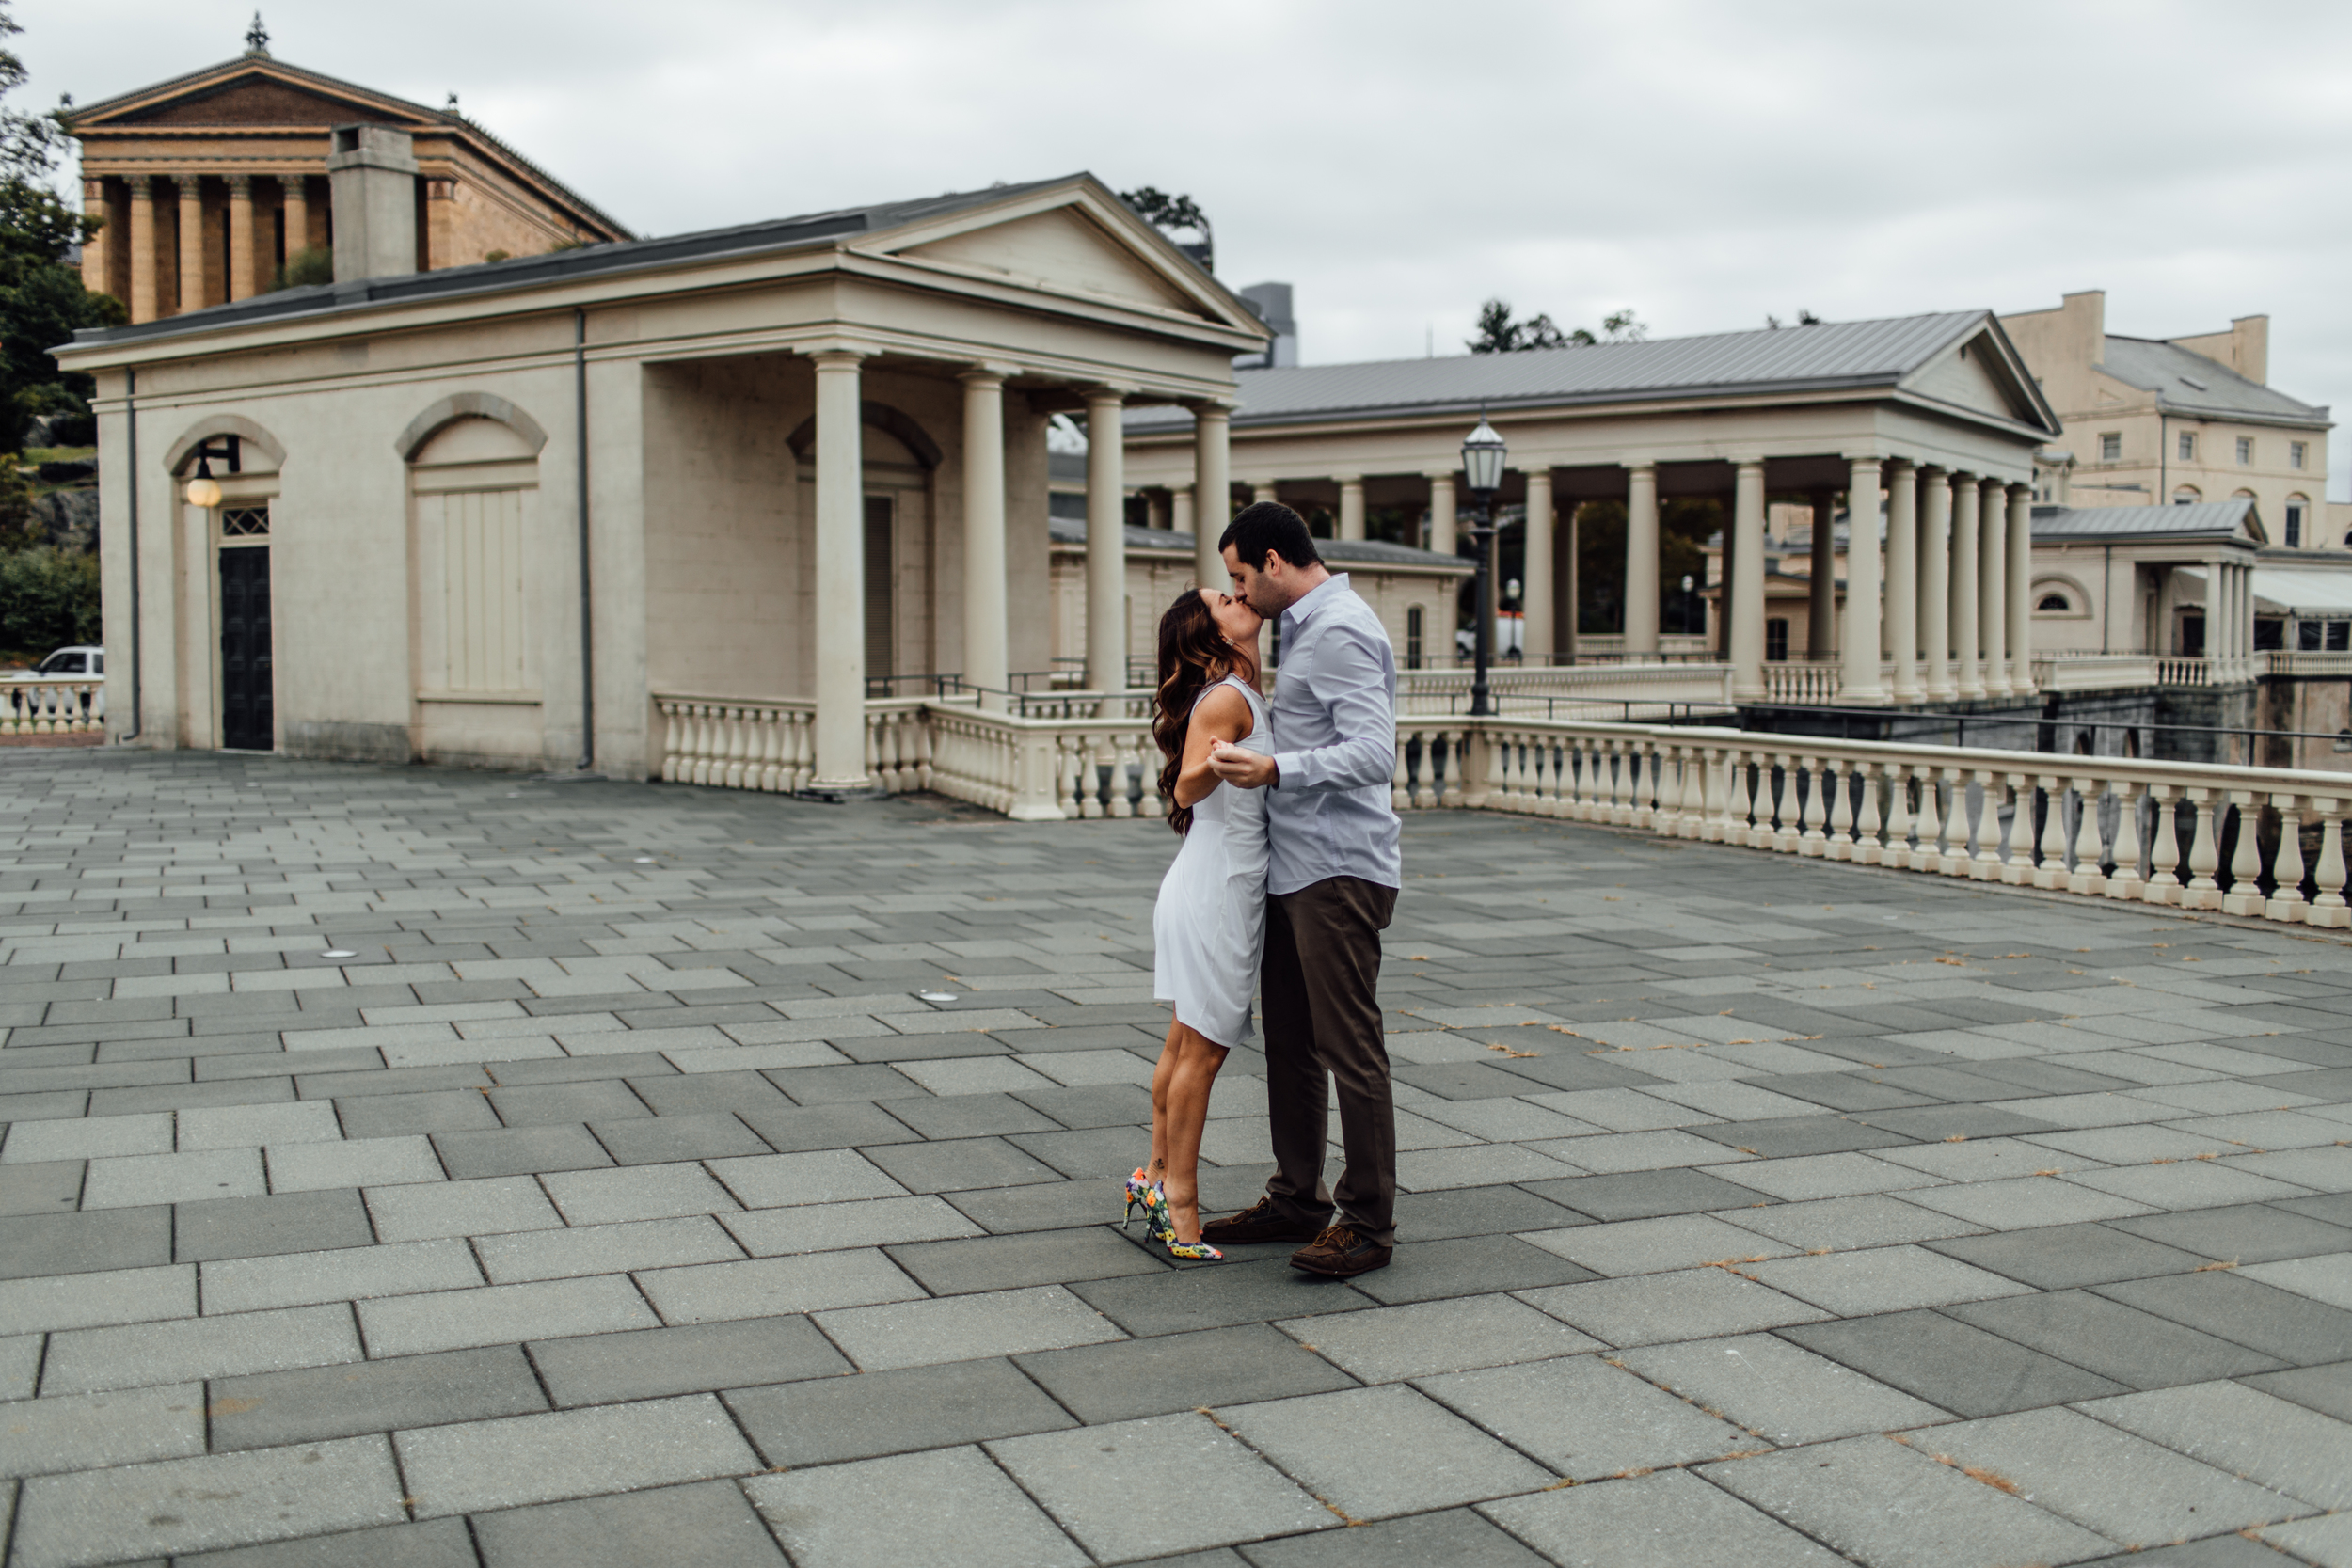 BRITTANYandKEVIN-Engagement2015 (28 of 115).jpg